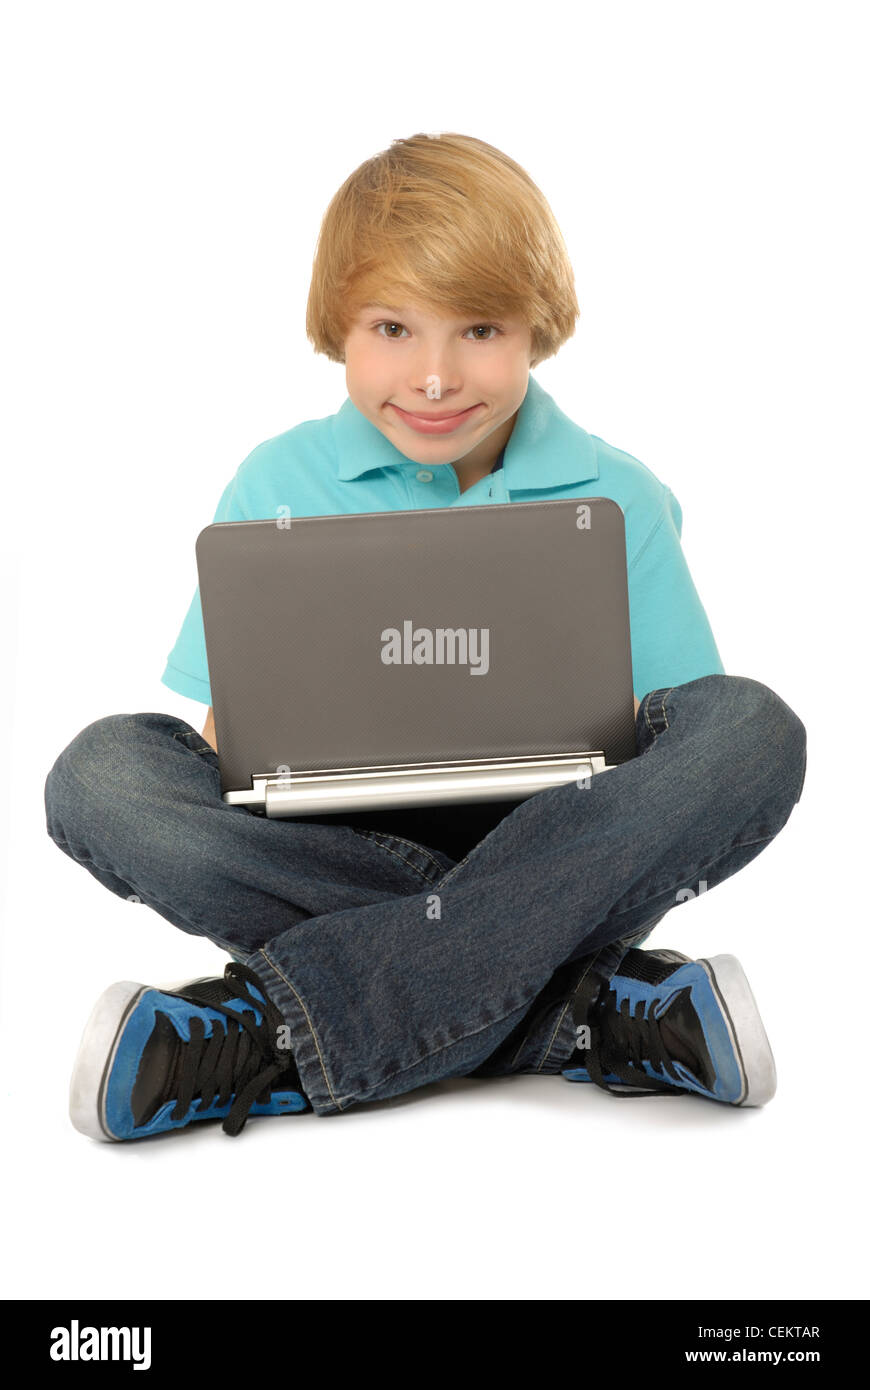 Eleven year old boy sitting and using laptop computer. - Stock Image